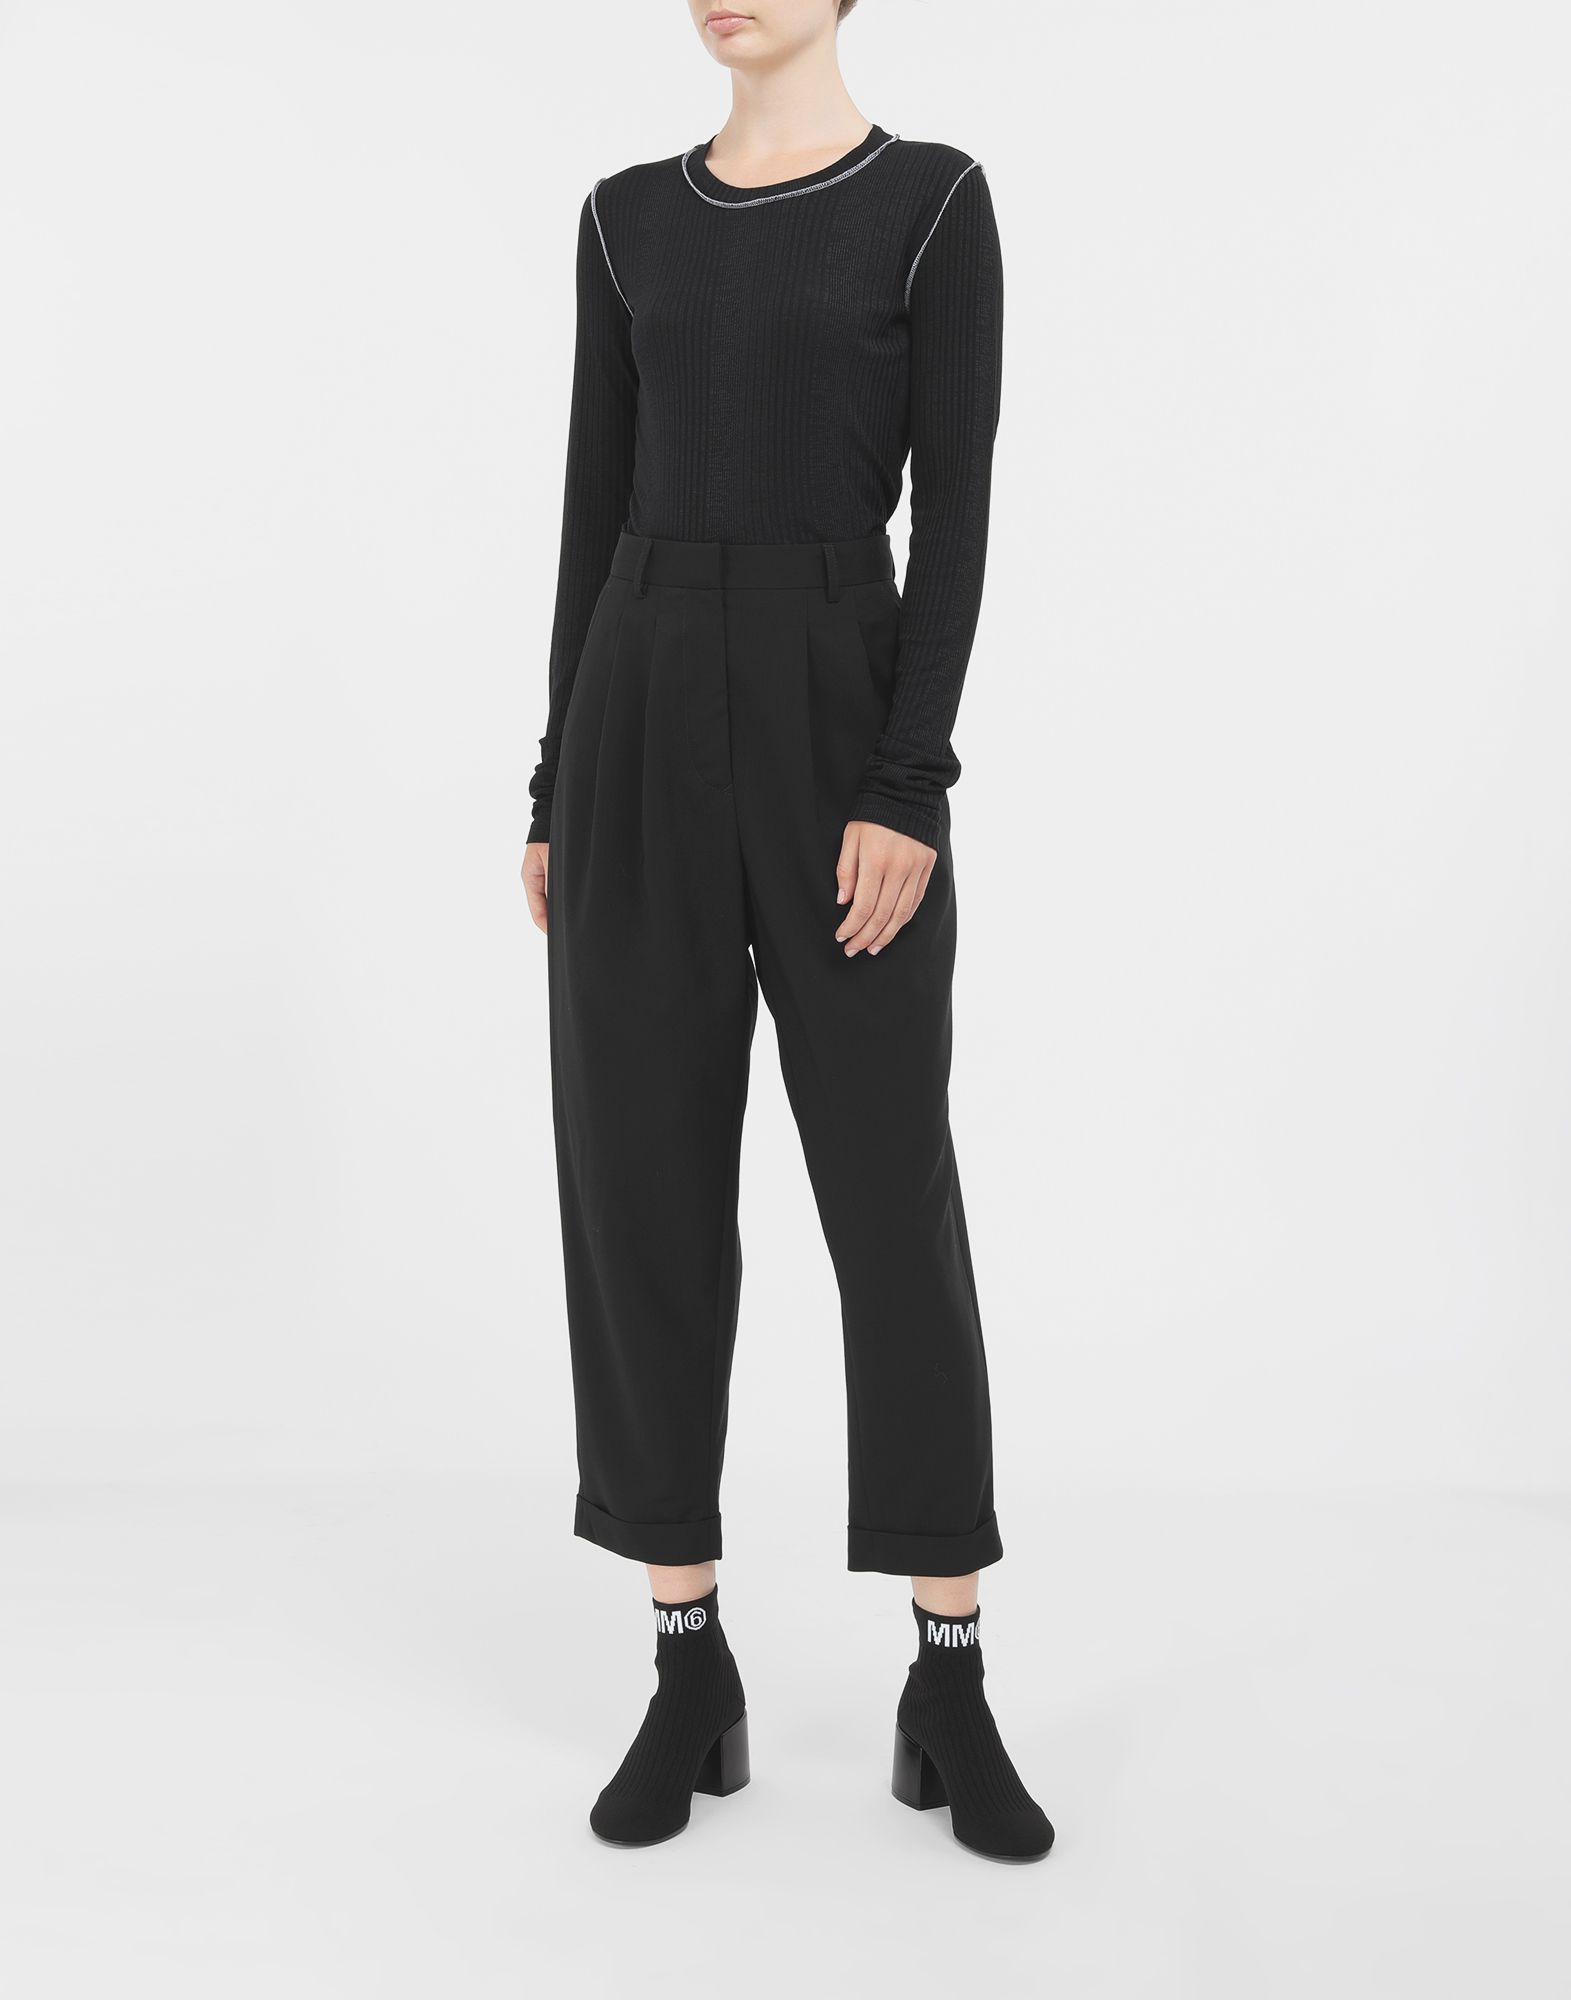 MM6 MAISON MARGIELA Tapered trousers Casual pants Woman d